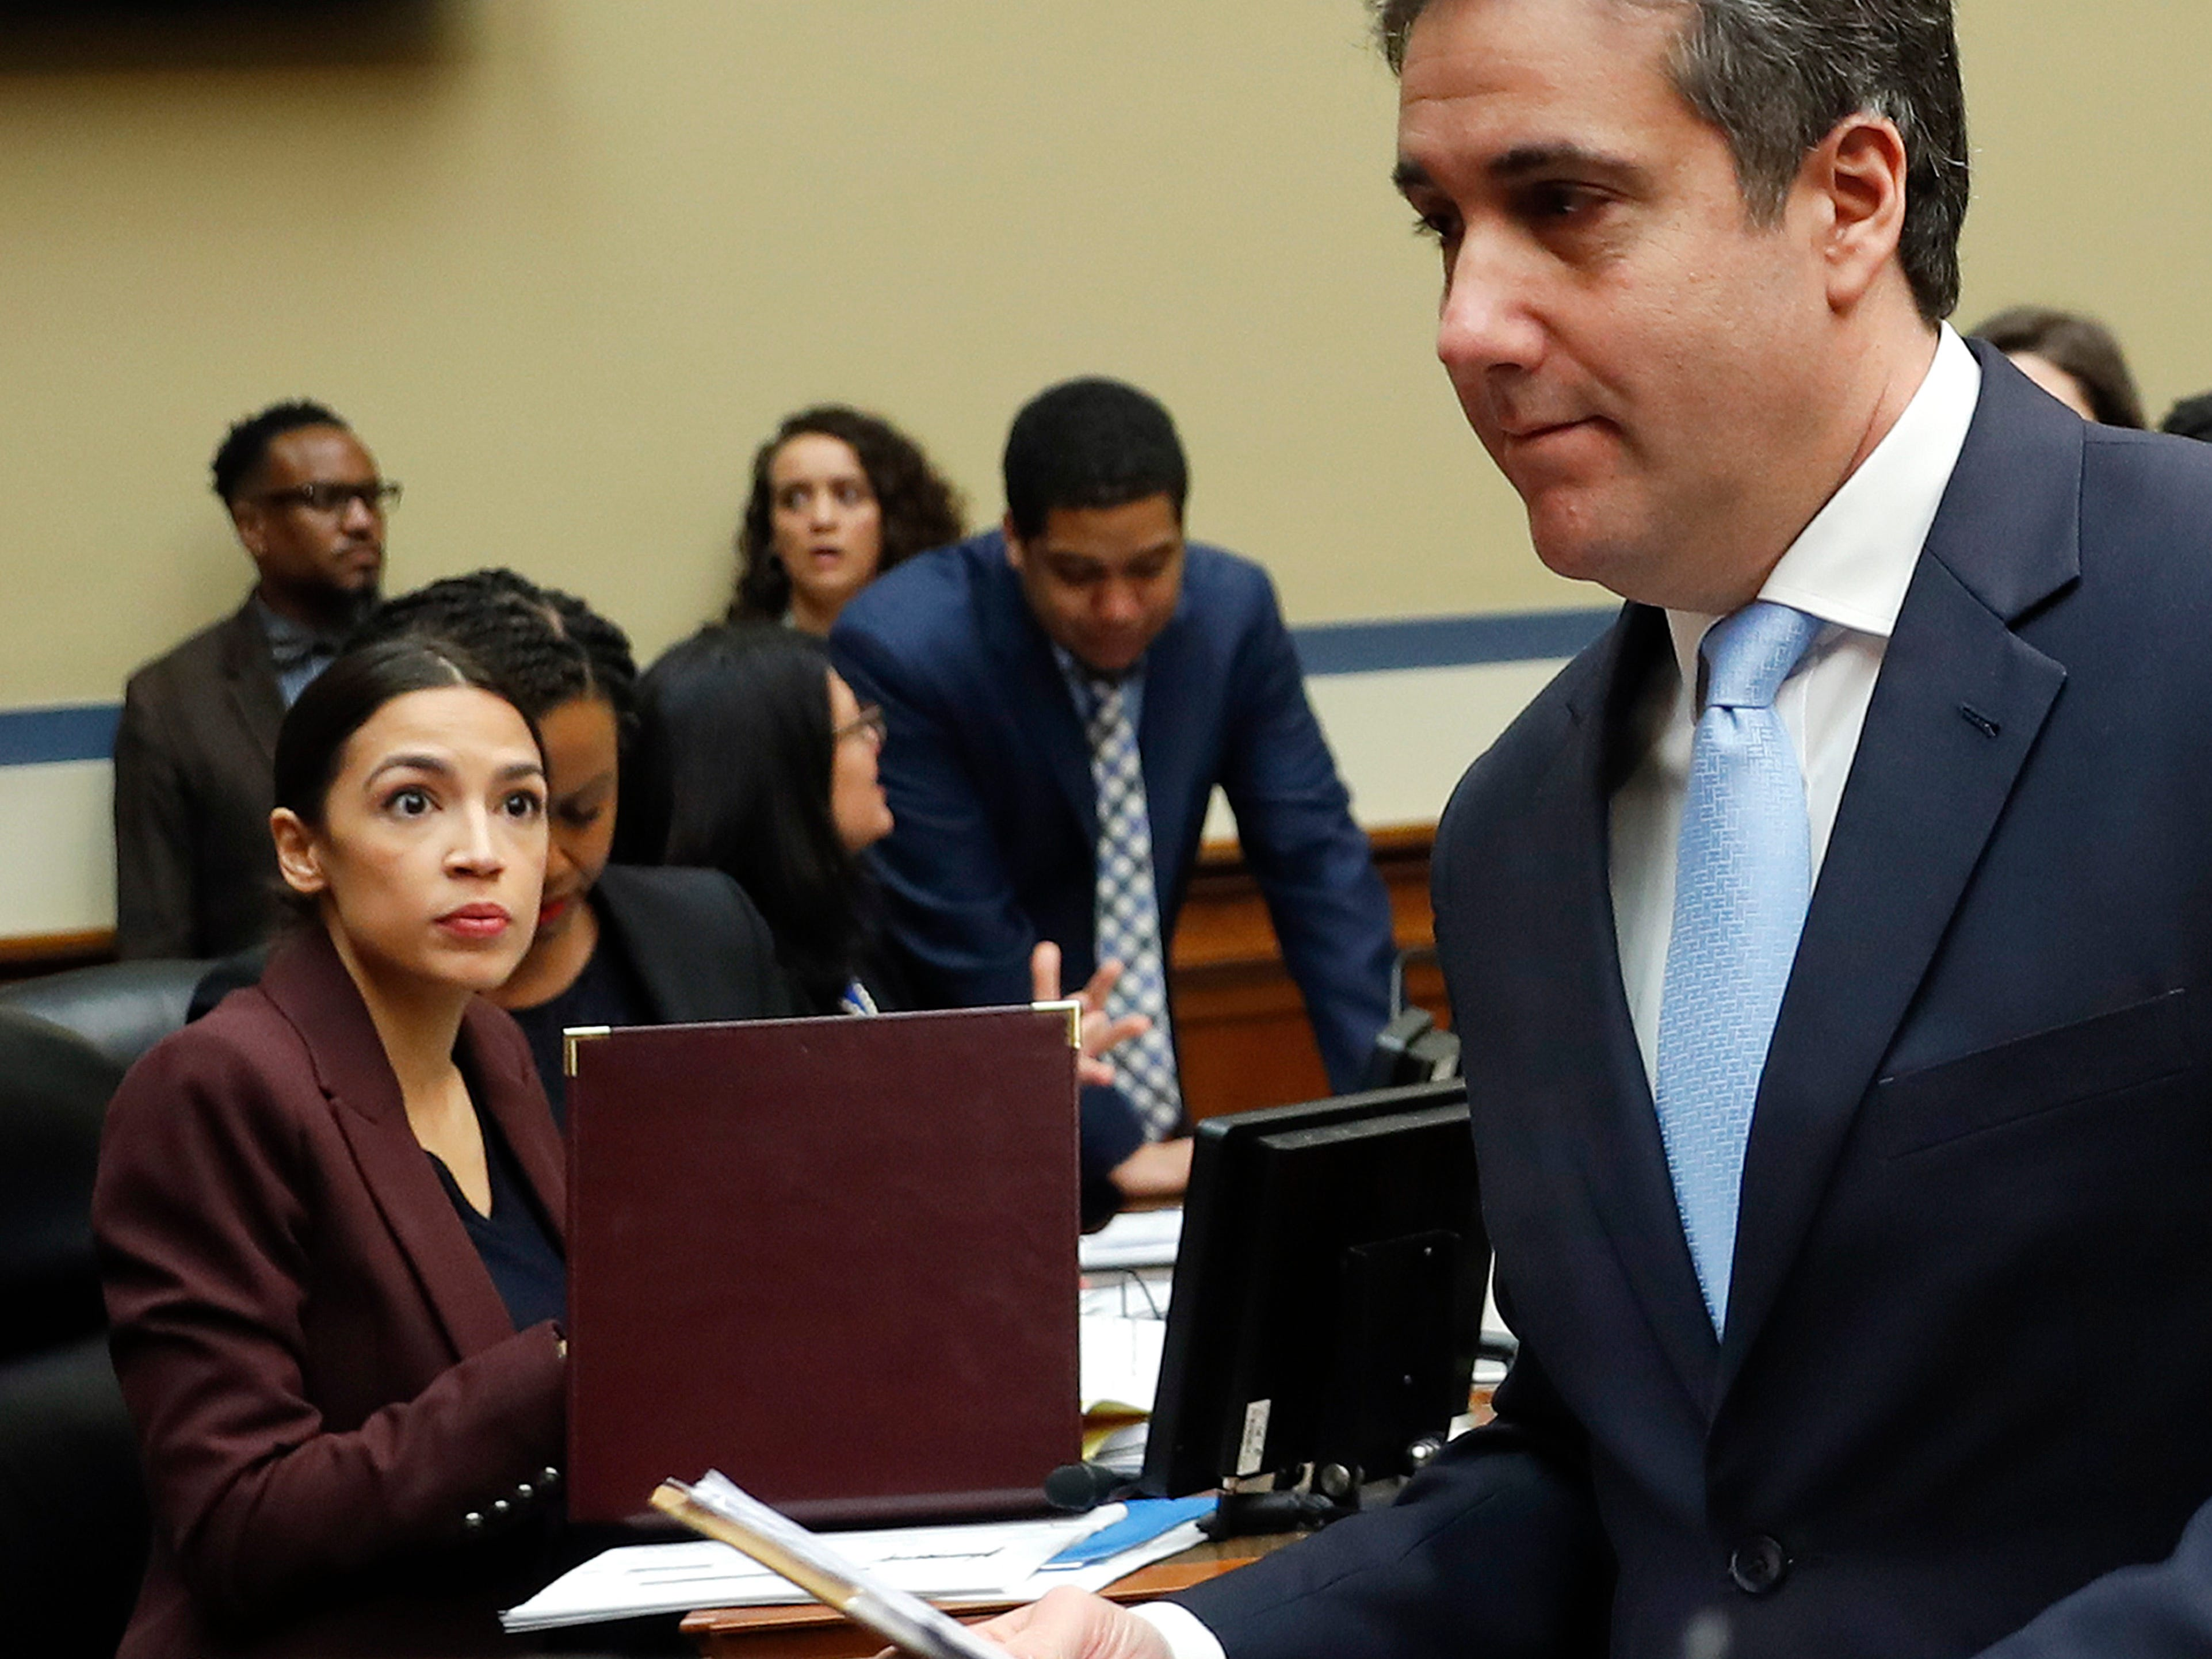 Michael Cohen, right, President Donald Trump's former lawyer, walks past committee member Rep. Alexandria Ocasio-Cortez, D-N.Y., center, during a break in Cohen's testimony before the House Oversight and Reform Committee on Capitol Hill in Washington, Wednesday, Feb. 27, 2019. (AP Photo/Pablo Martinez Monsivais) ORG XMIT: DCPM104